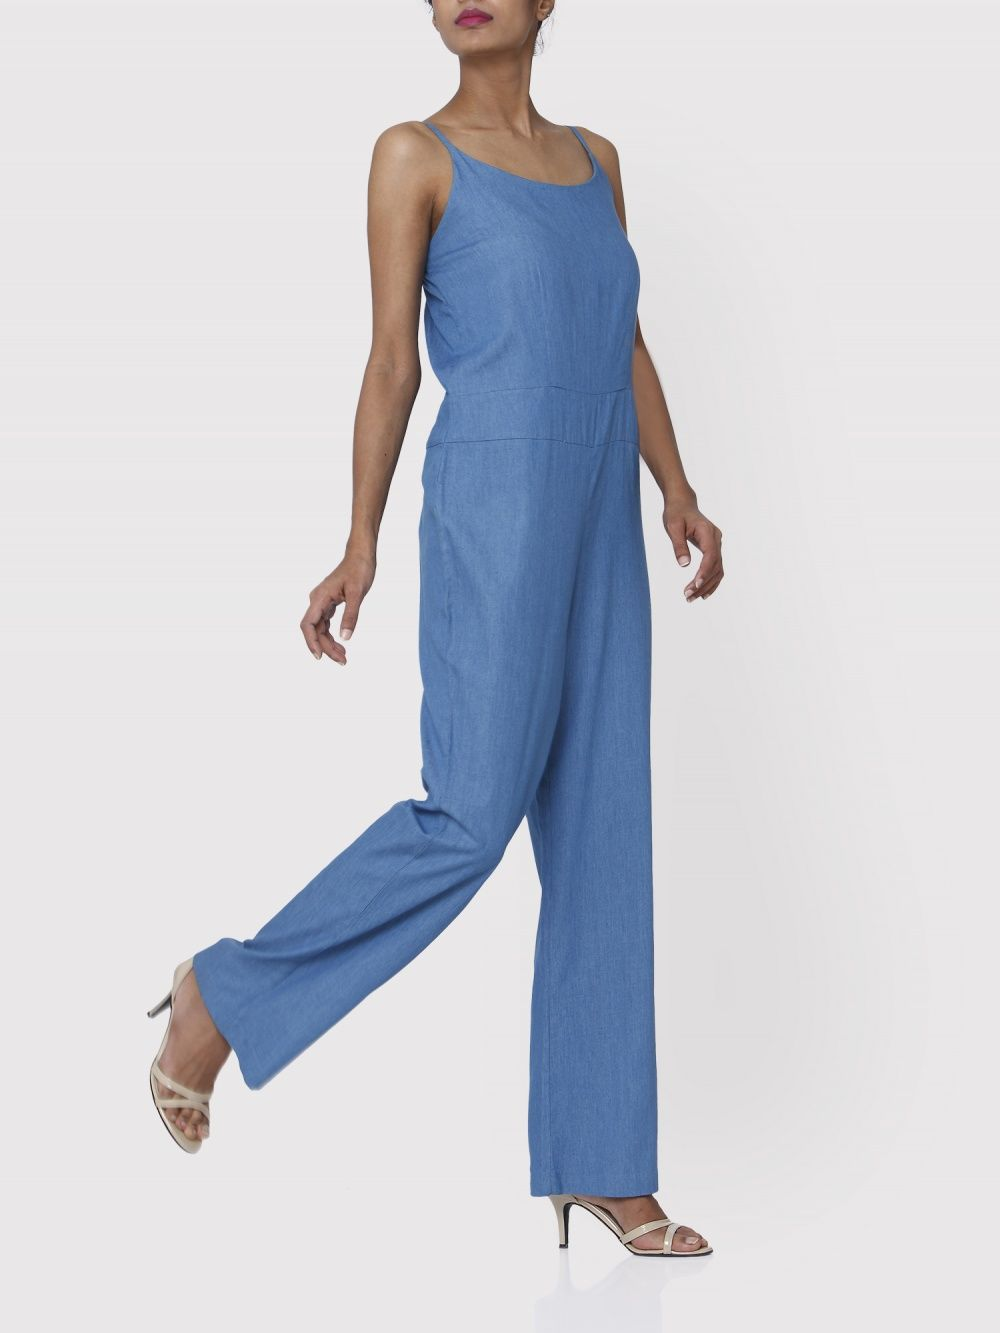 0c96baf741c5f Aruni Jumpsuits   Buy Aruni Medium Blue Denim Jumpsuit Online ...